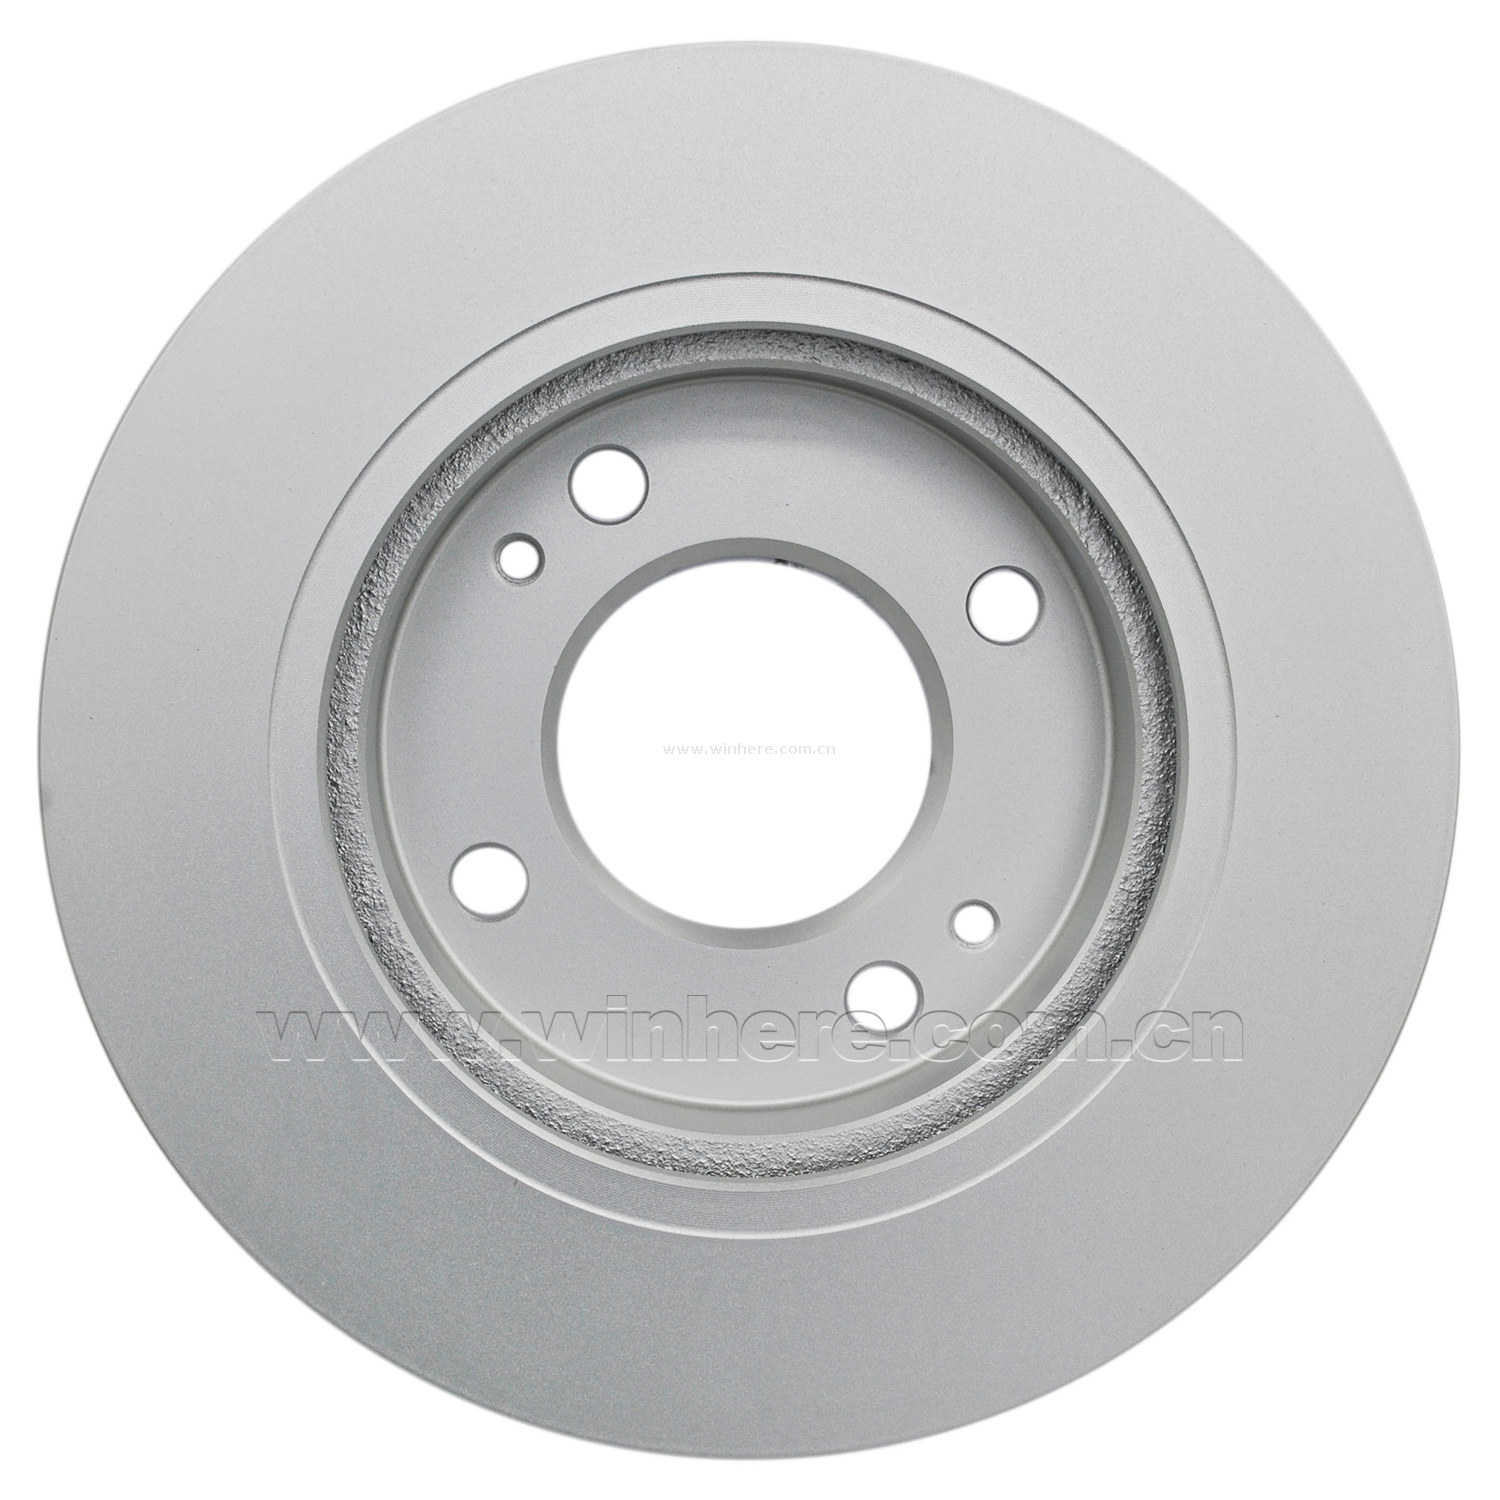 Auto Spare Parts Front Brake Disc(Rotor) for OE#4615A105/402066A00J